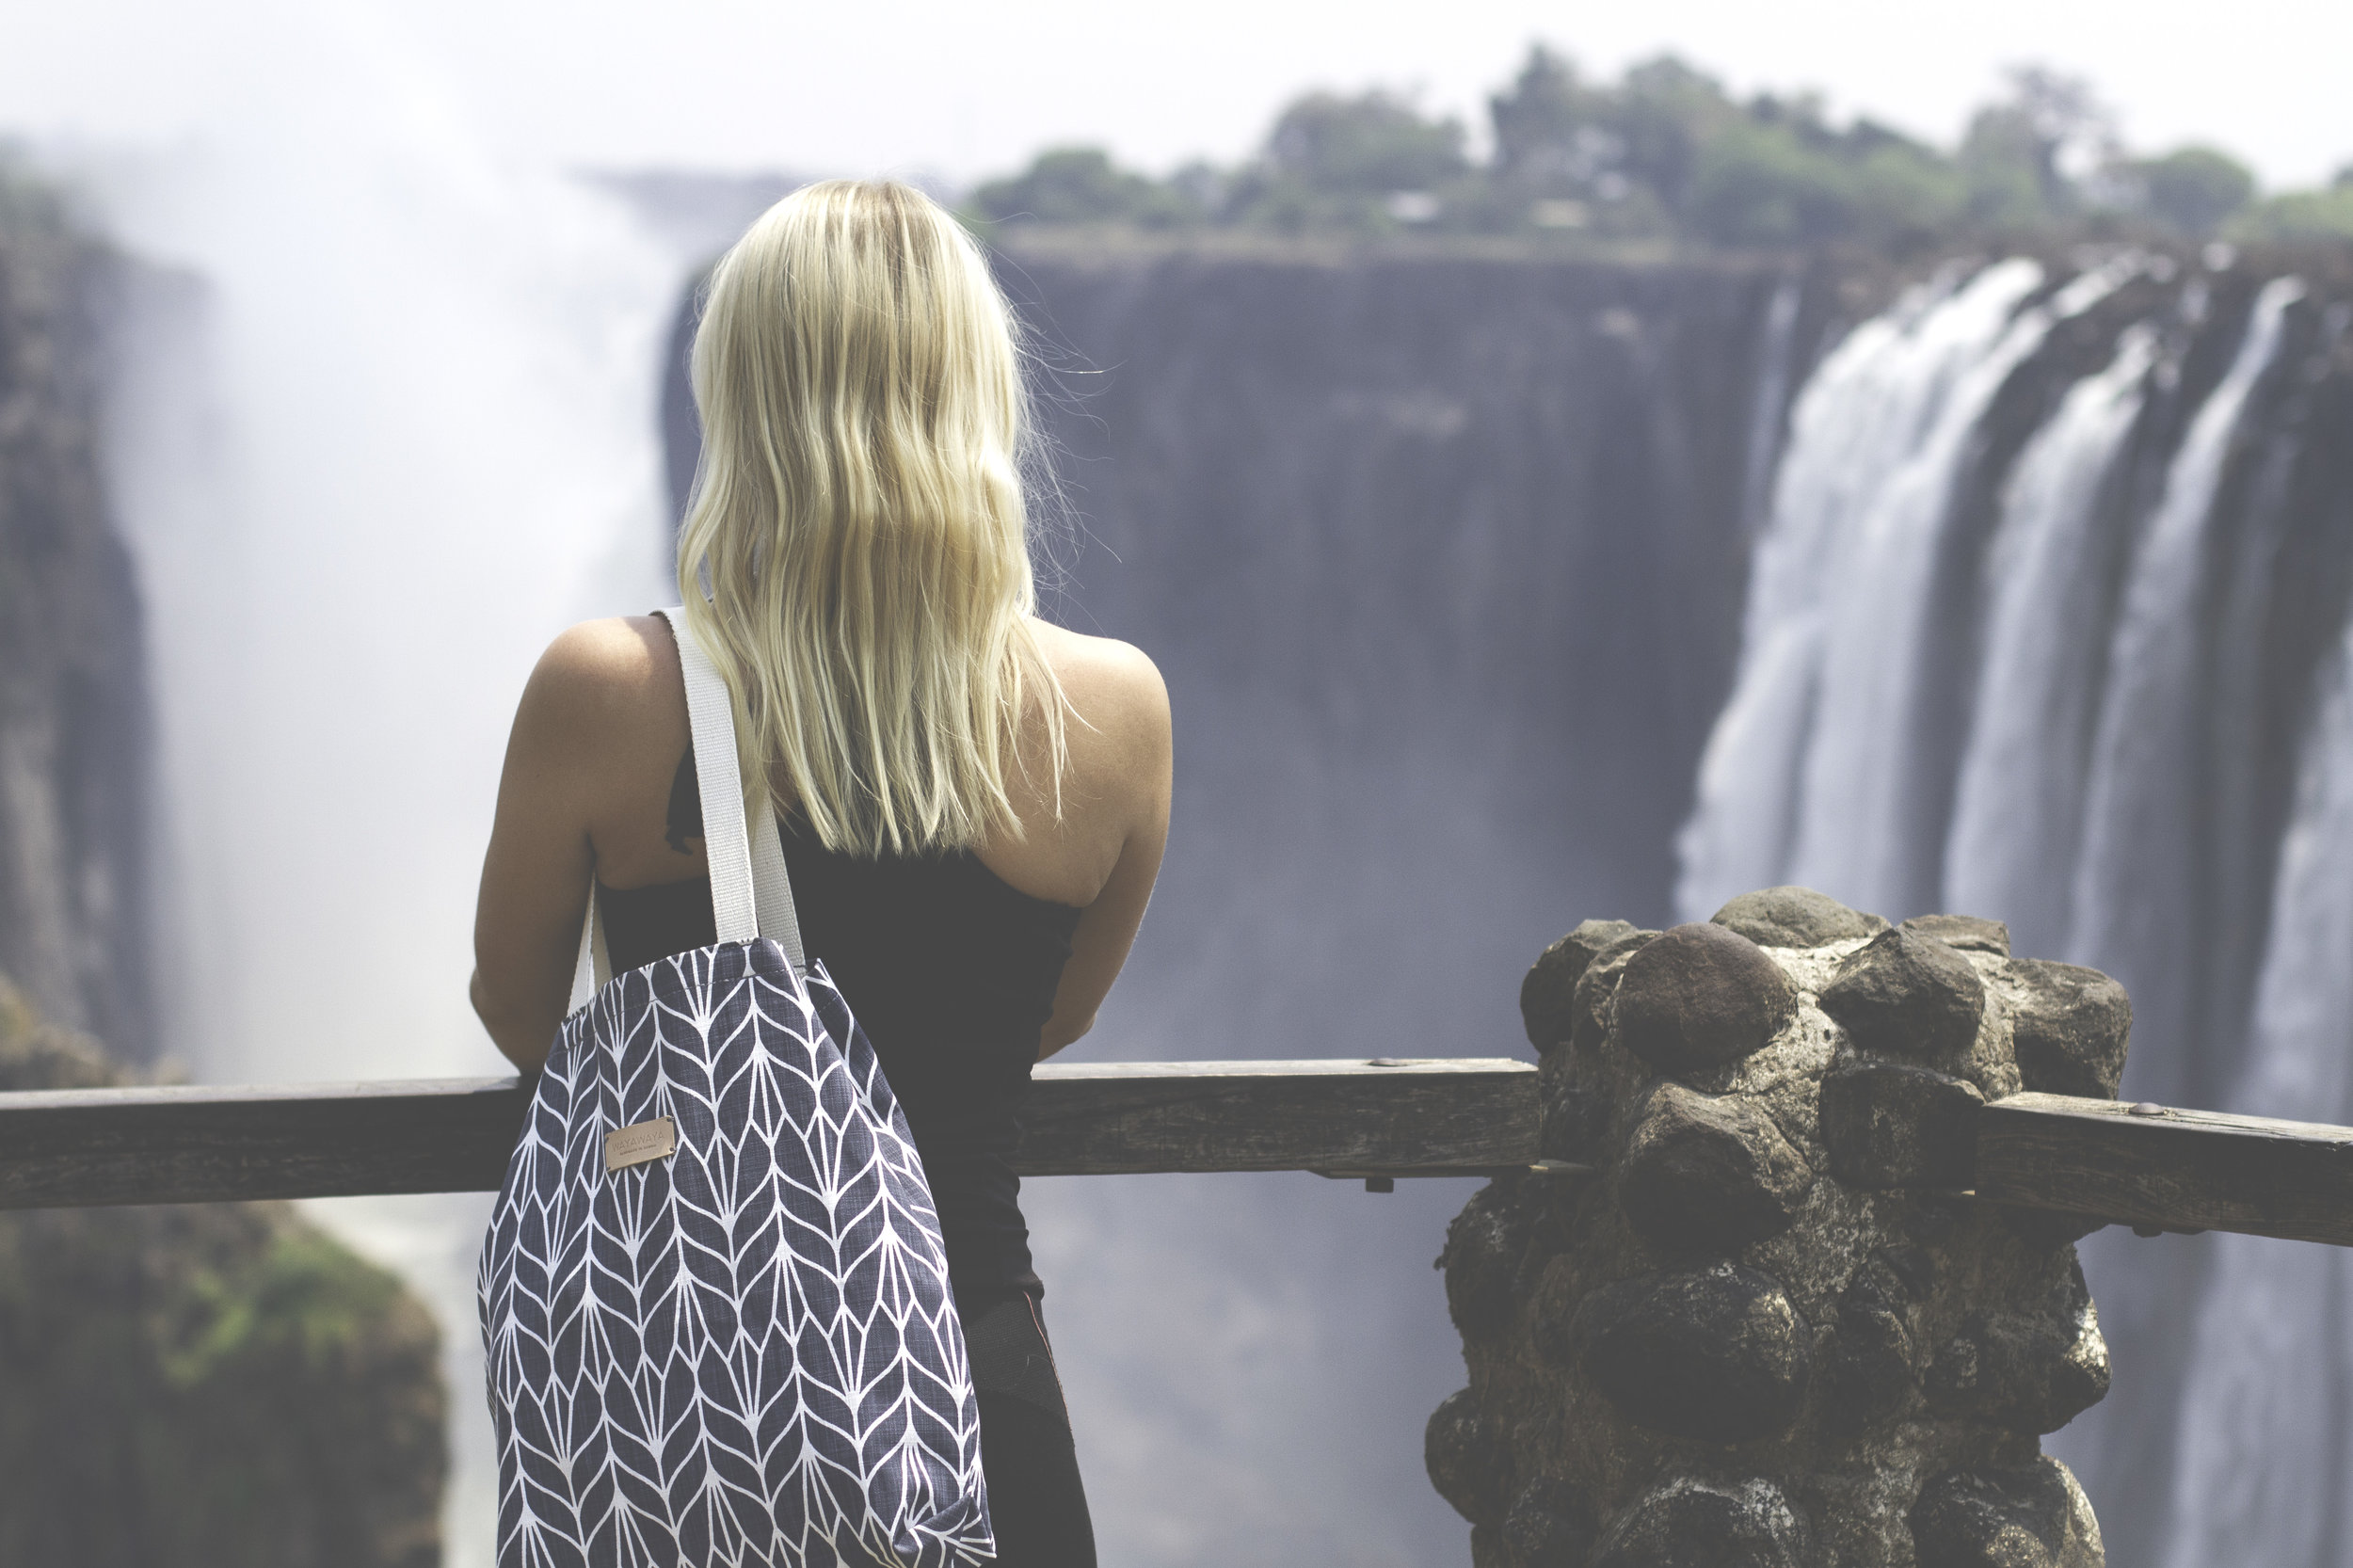 10 MINUTES FROM THE VICTORIA FALLS -